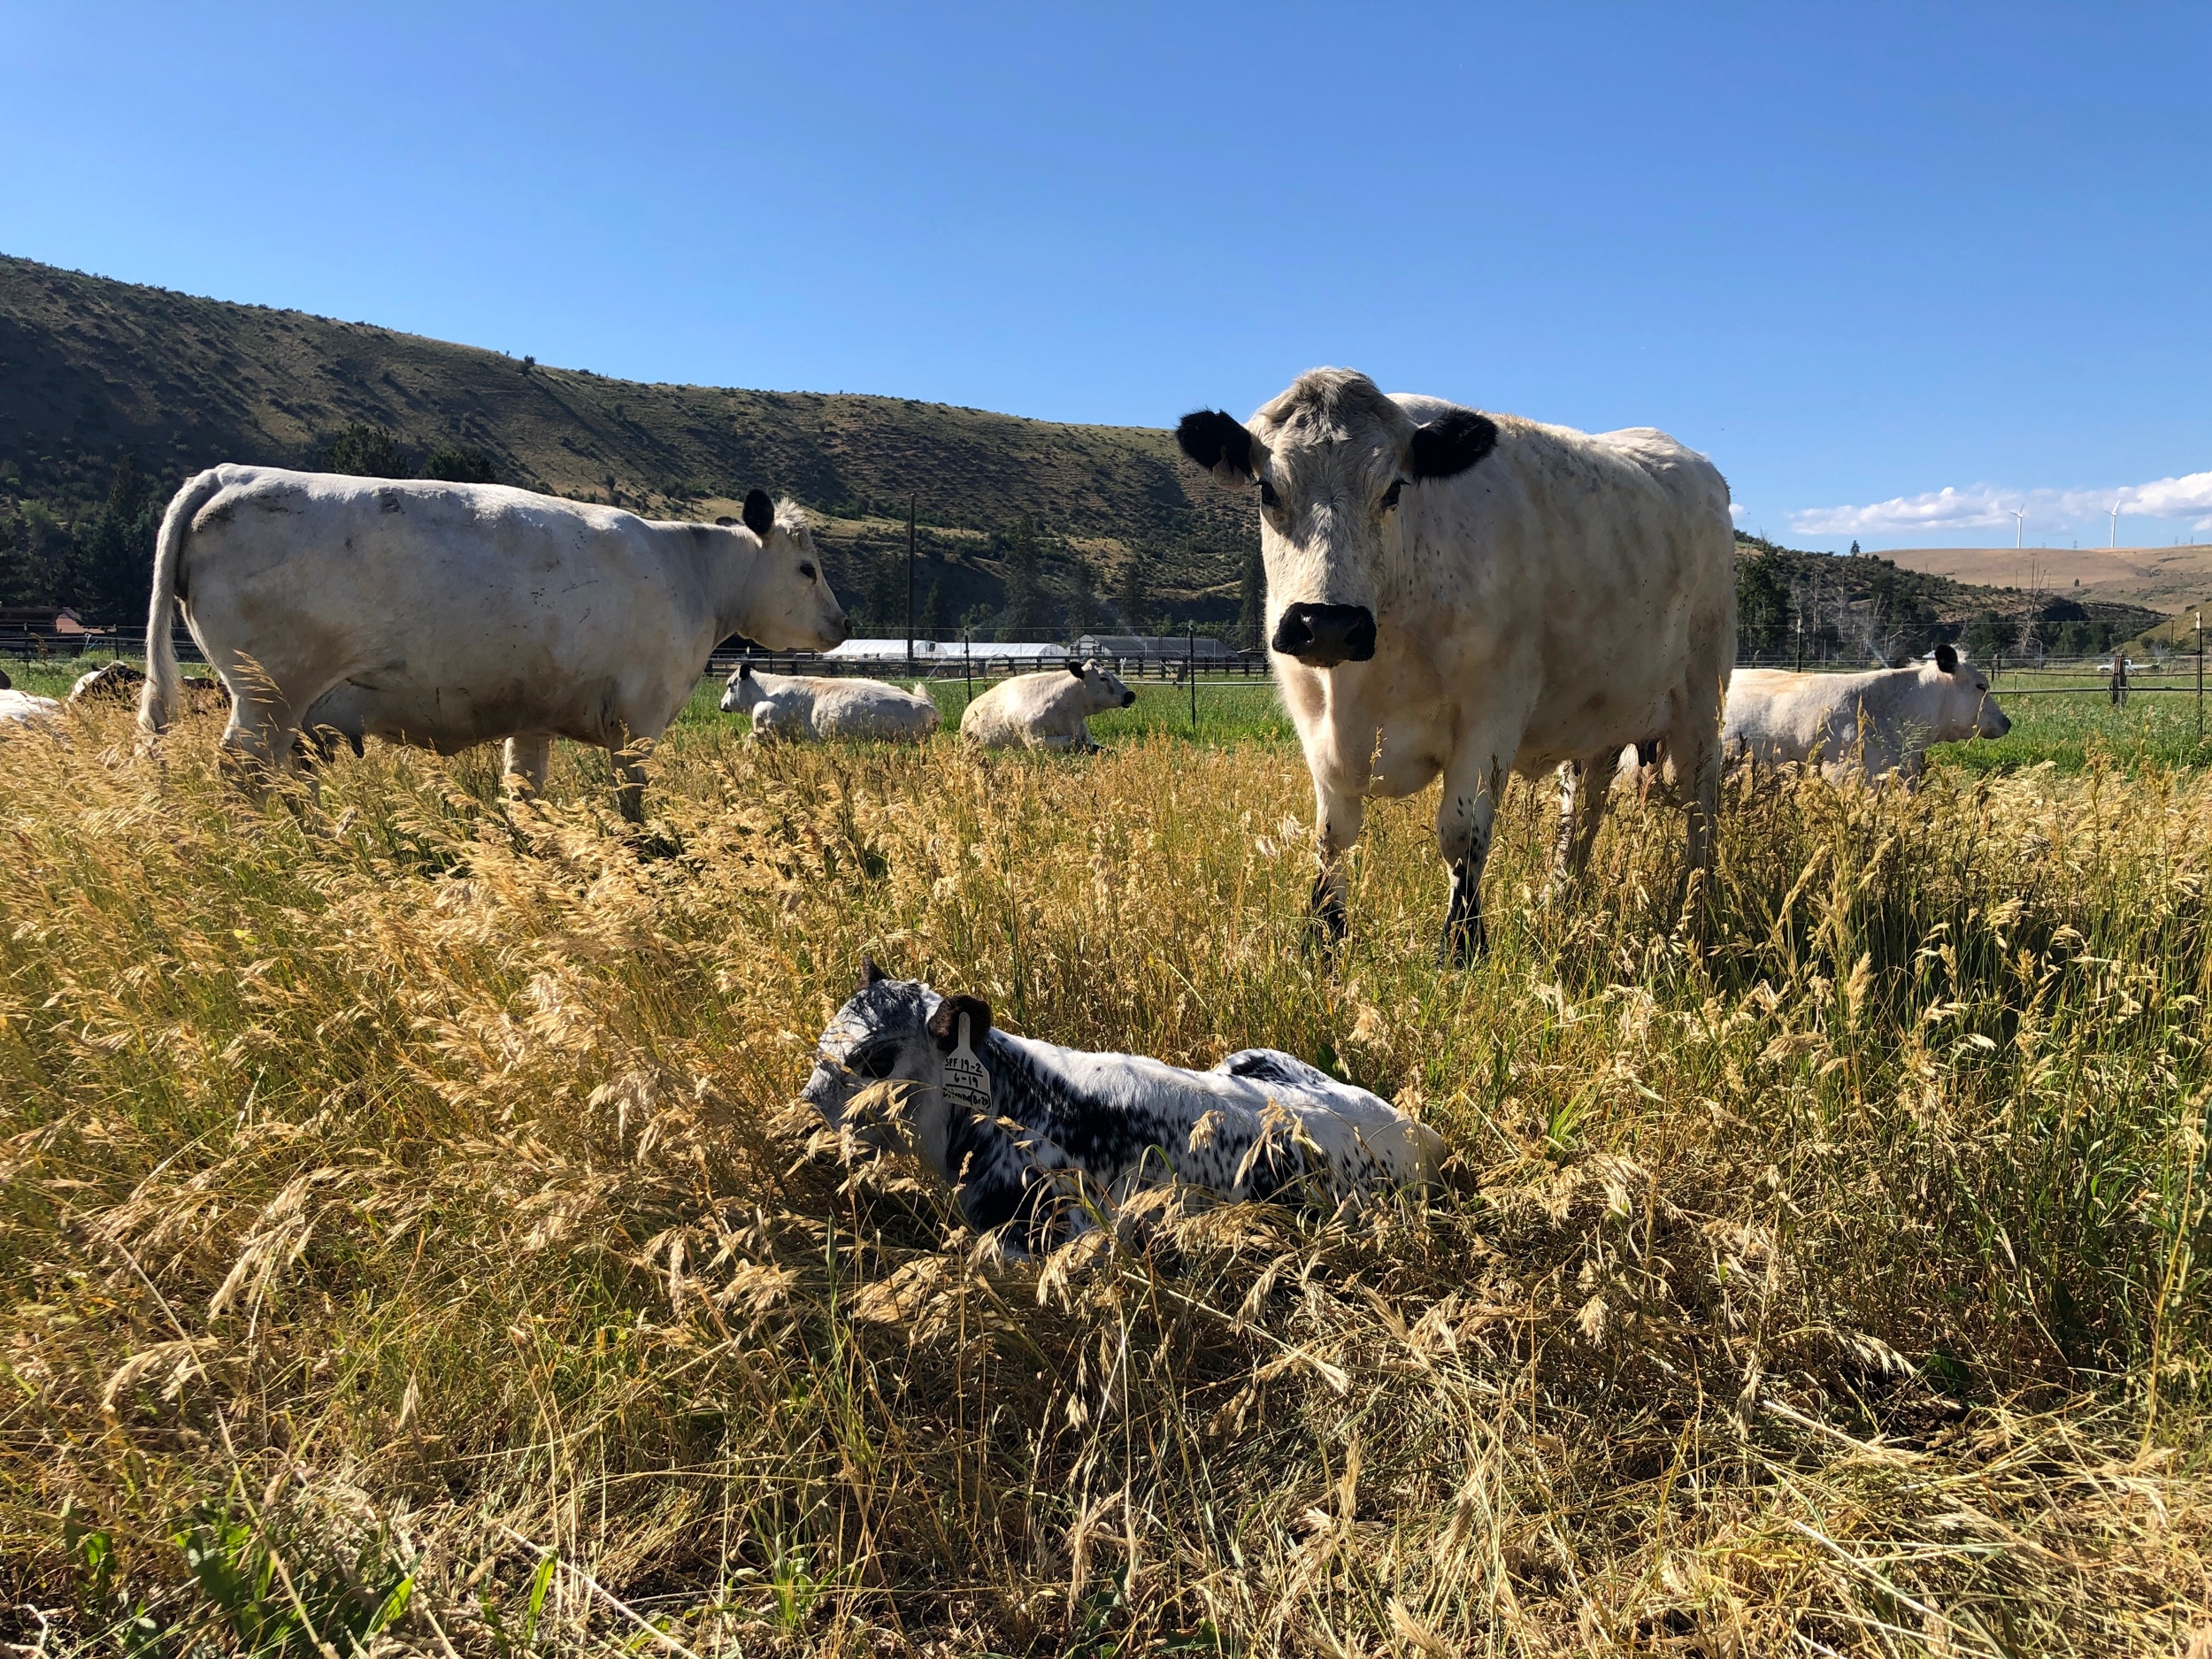 A brand-new calf at Spoon Full Farm